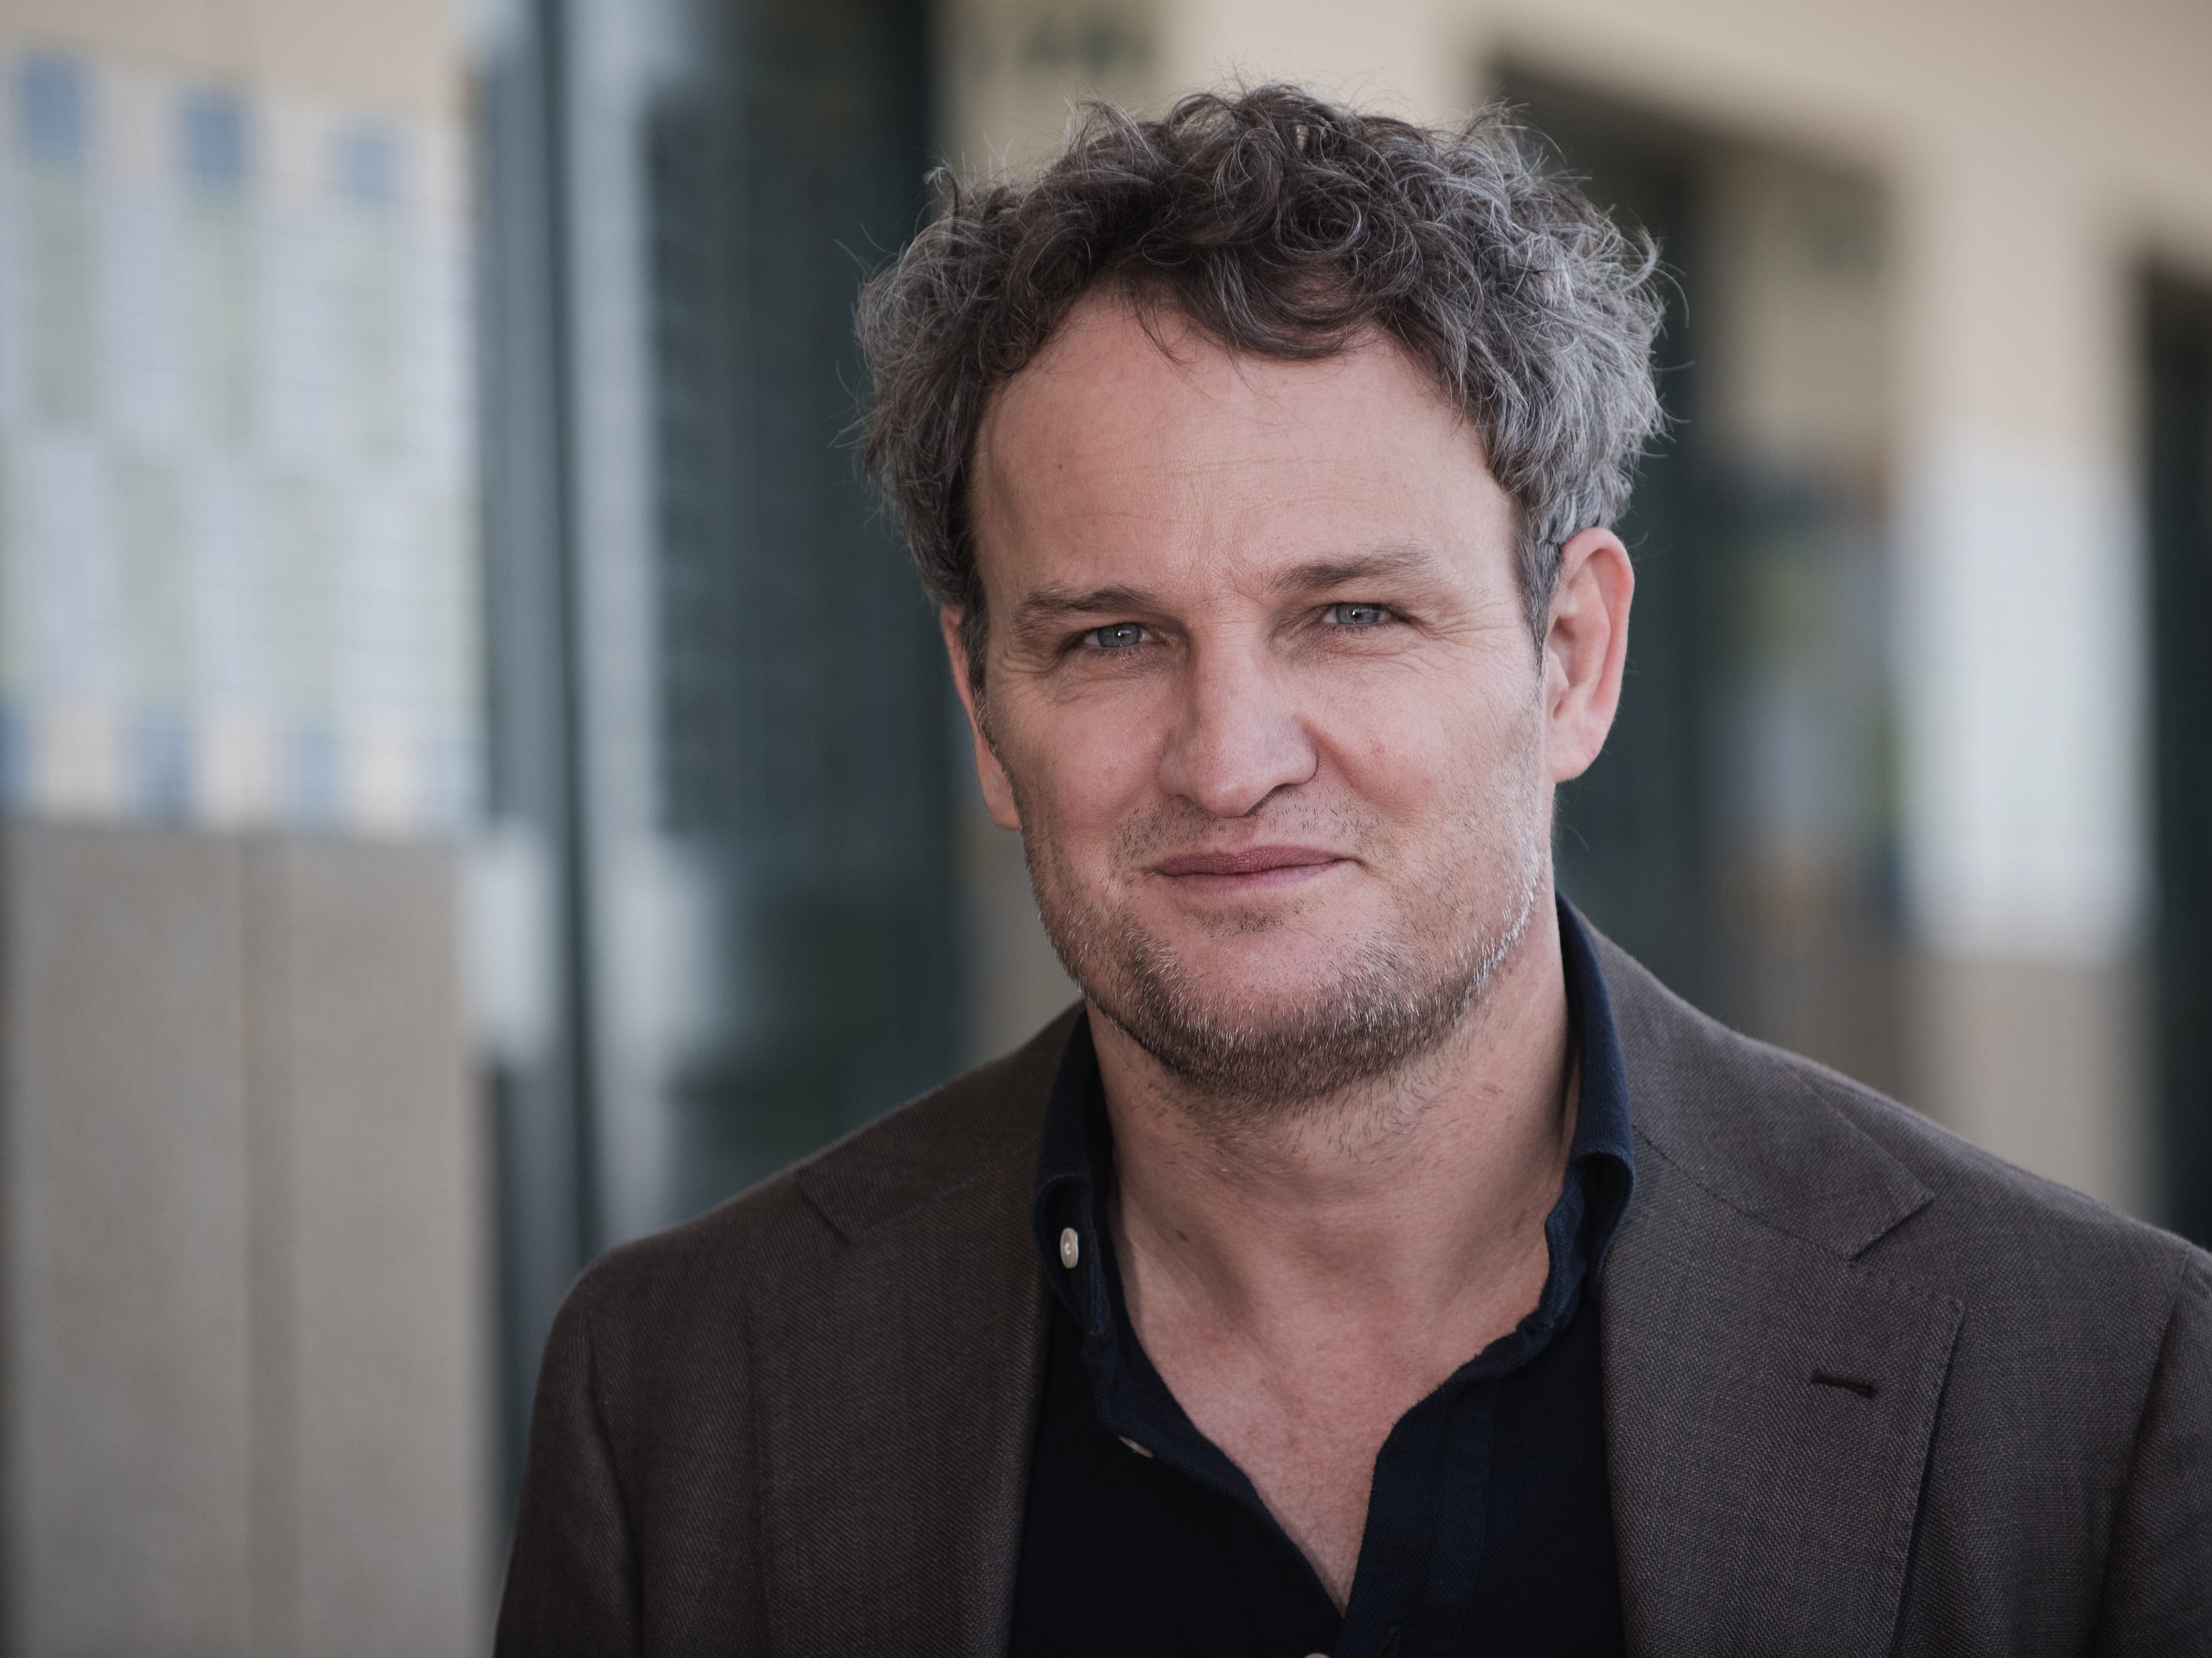 Jason Clarke poses during the unveiling of his dedicated beach locker room on the Promenade des Planches during the 44th Deauville US Film Festival  on Sept. 1, 2018 in Deauville, France.